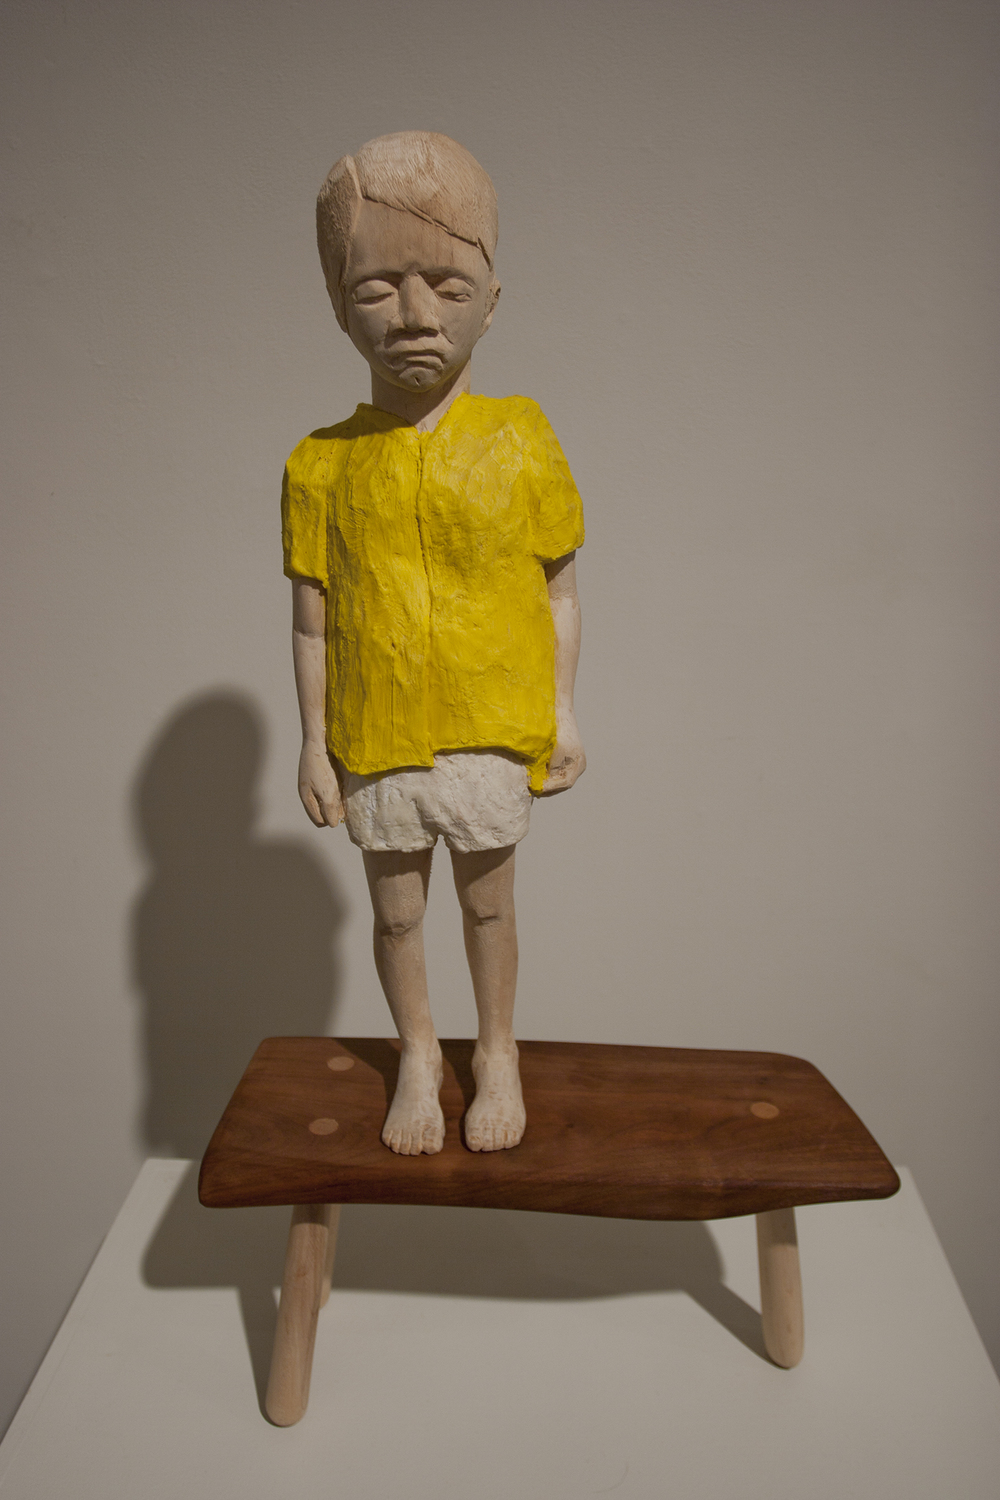 me as my father as a child. Wood and paint. 2012. Private collection Harrisburg, PA.